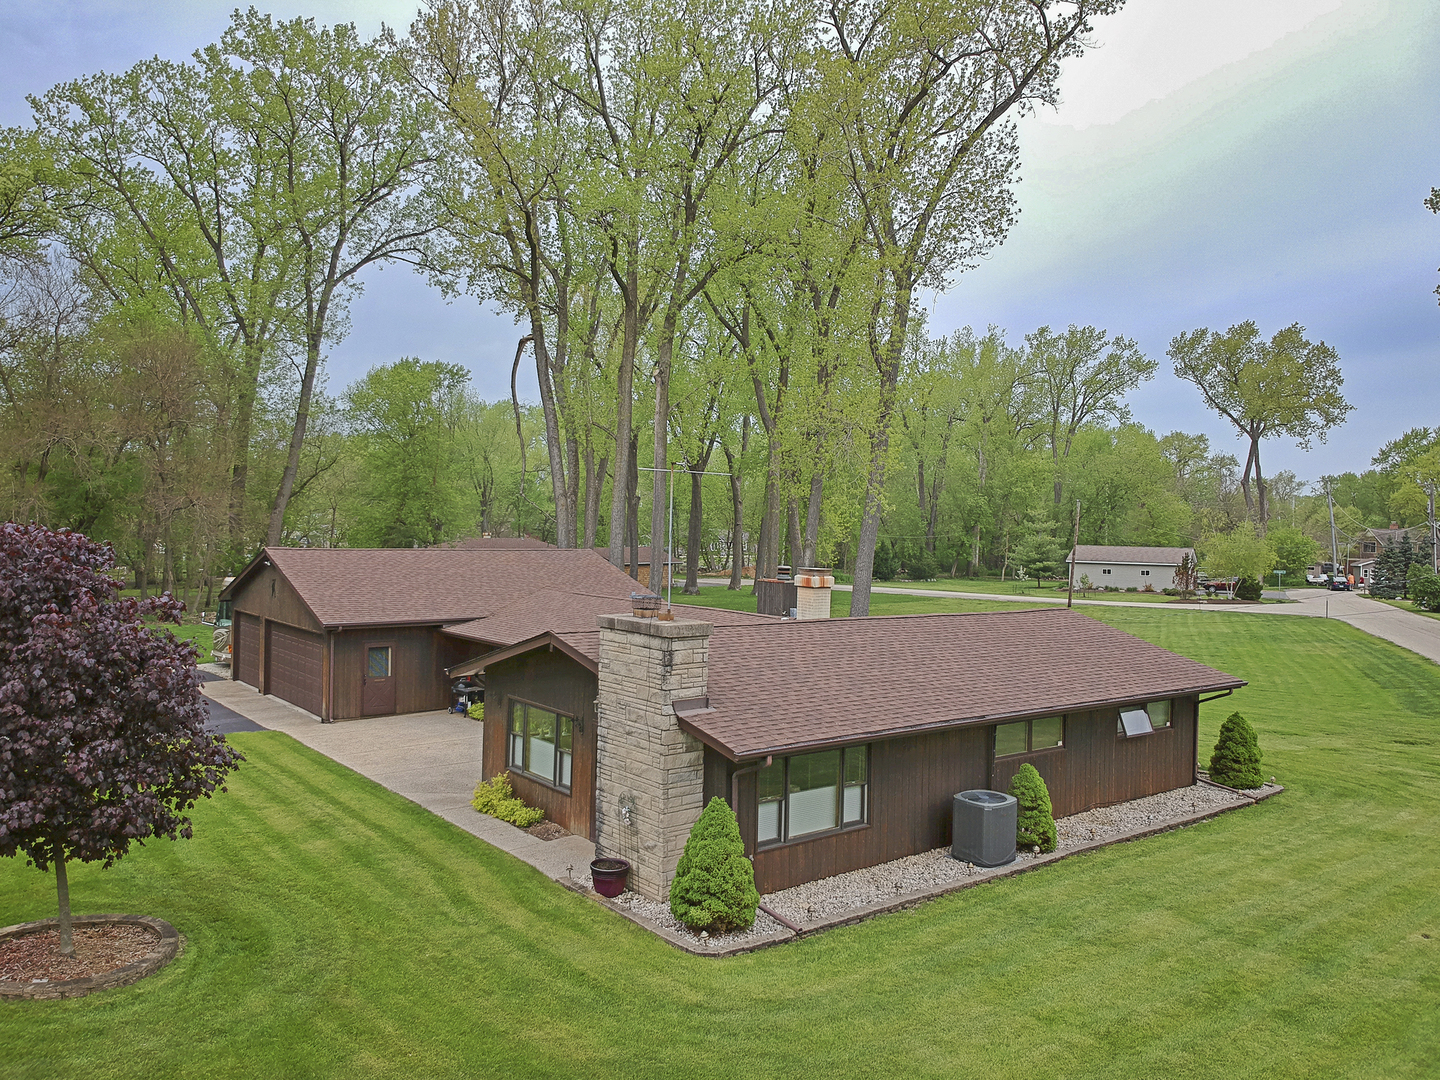 1206 Whippoorwill Drive, Crystal Lake, IL 60014